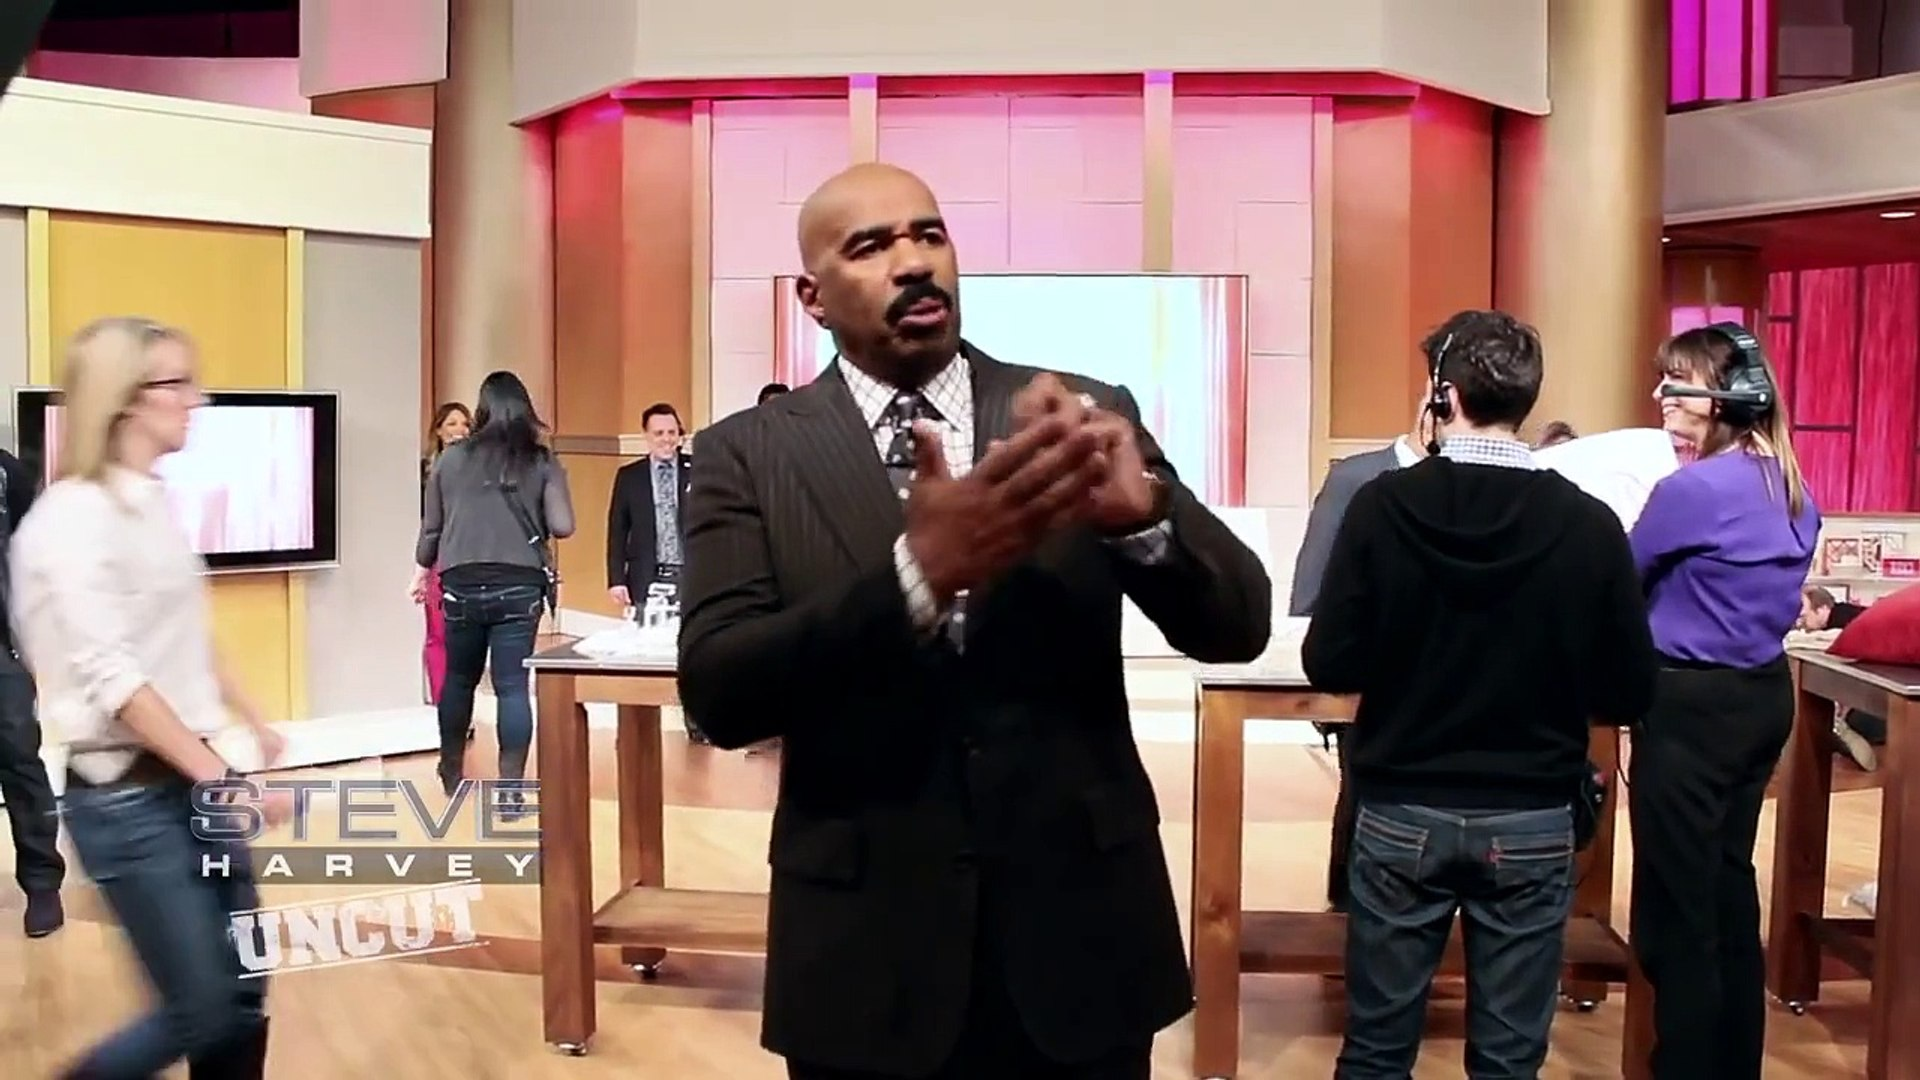 Steve Harvey Uncut: You can't drink everything that happens to you || STEVE HARVEY